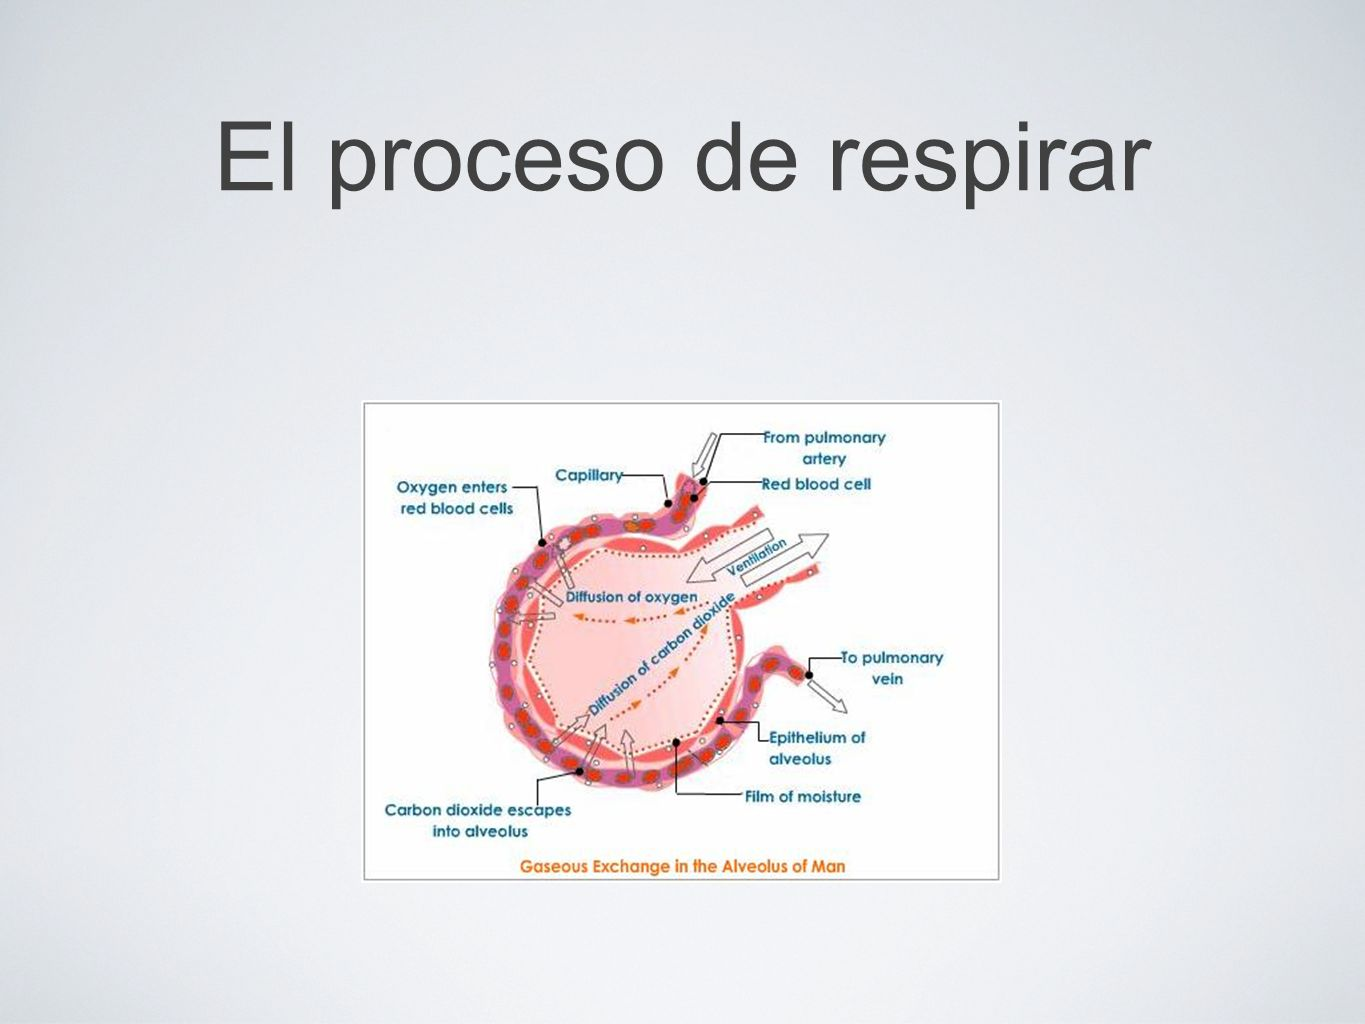 El proceso de respirar (Diagram) Left side: Capilar